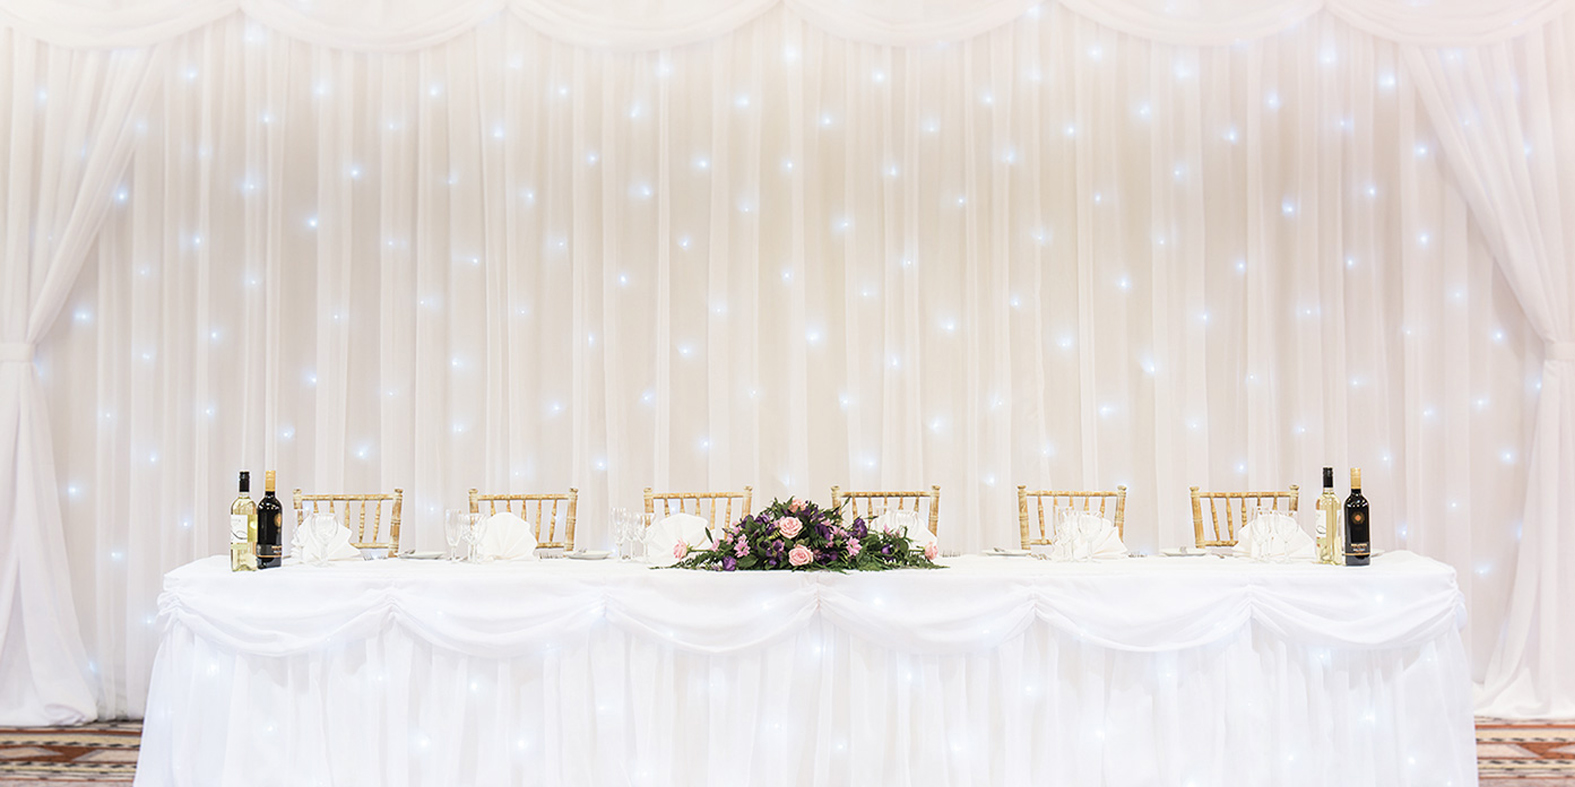 Fairy Light Backdrop